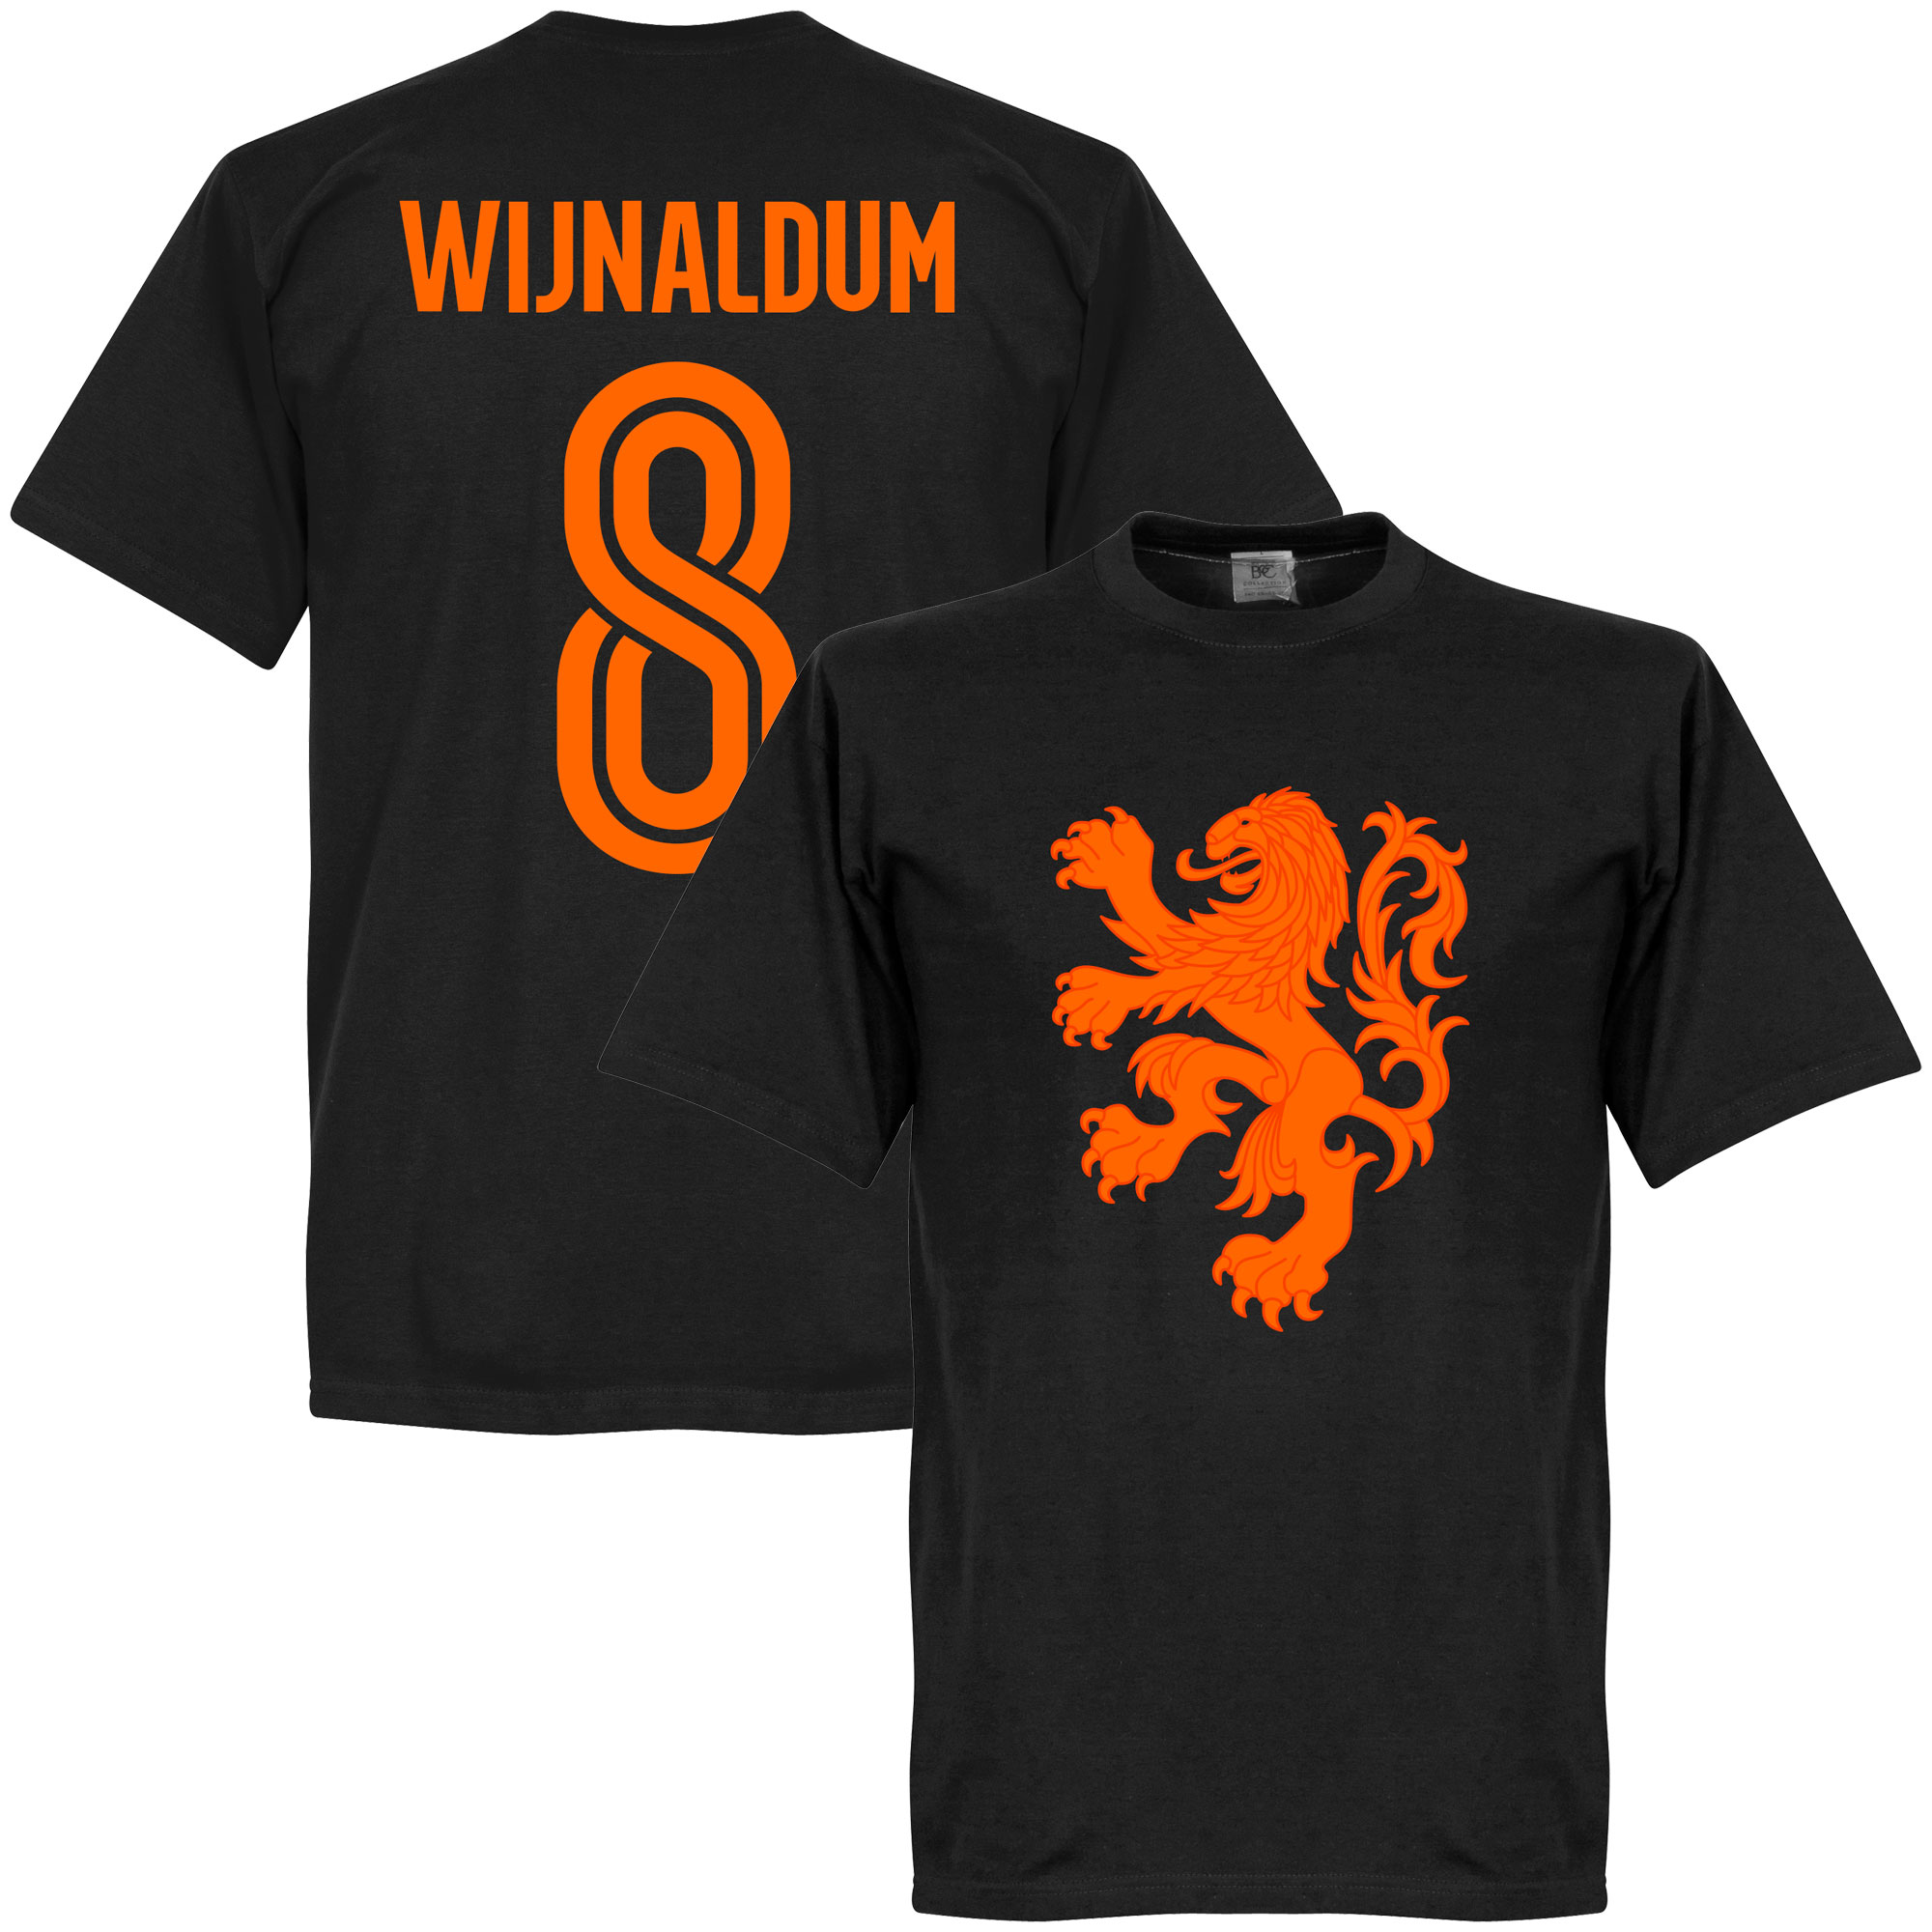 Holland Wijnaldum Lion Tee - Black - S